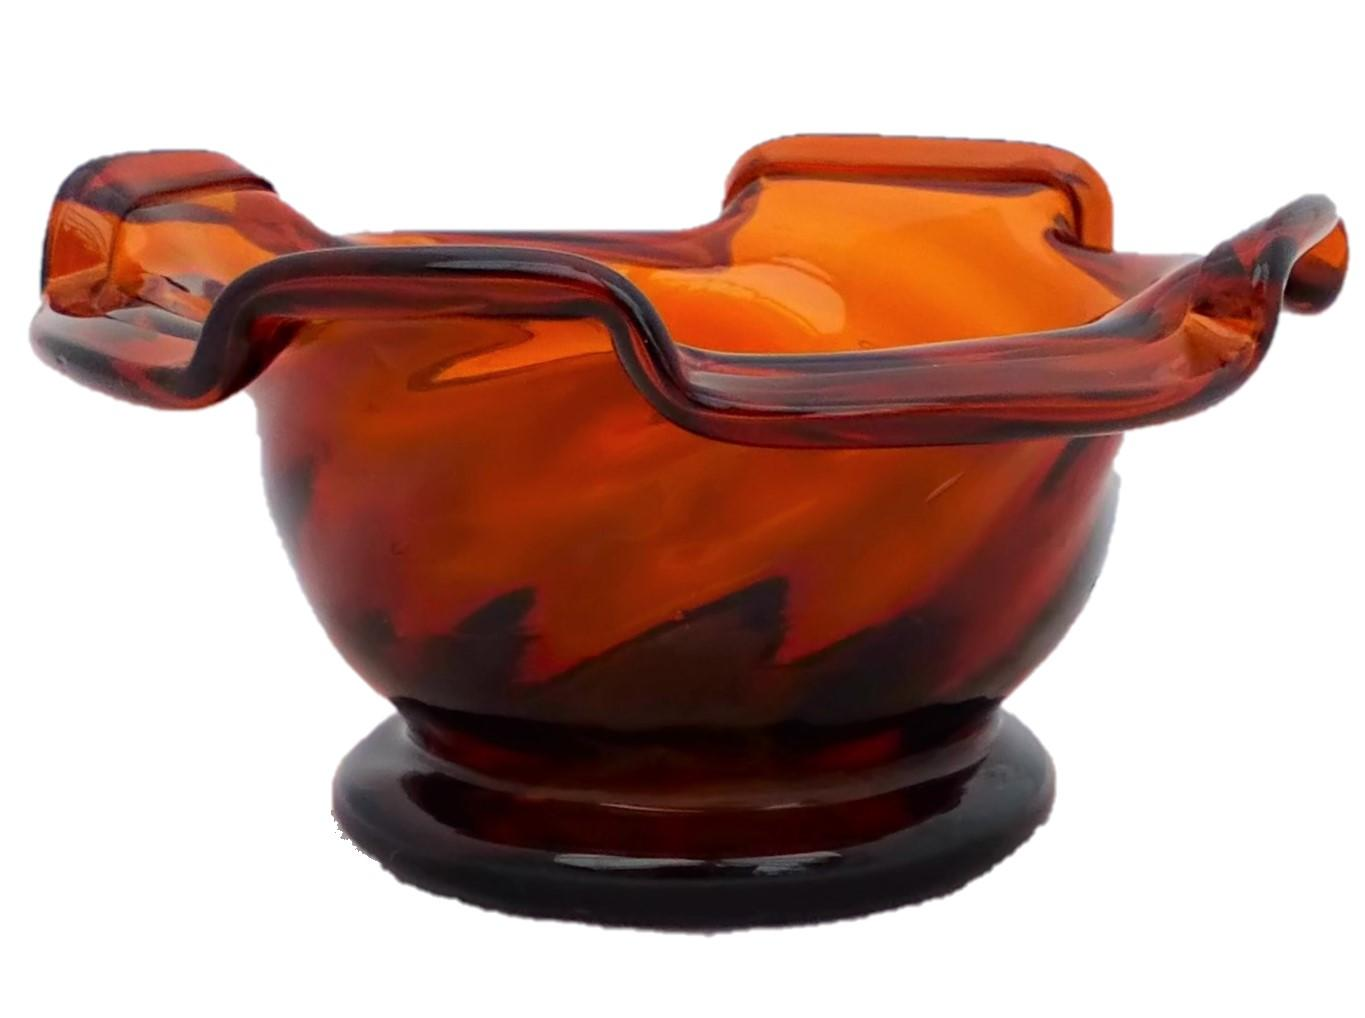 Antique Victorian amber glass wrythen sweetmeat bowl or pan with a pinched and folded rim circa 1850